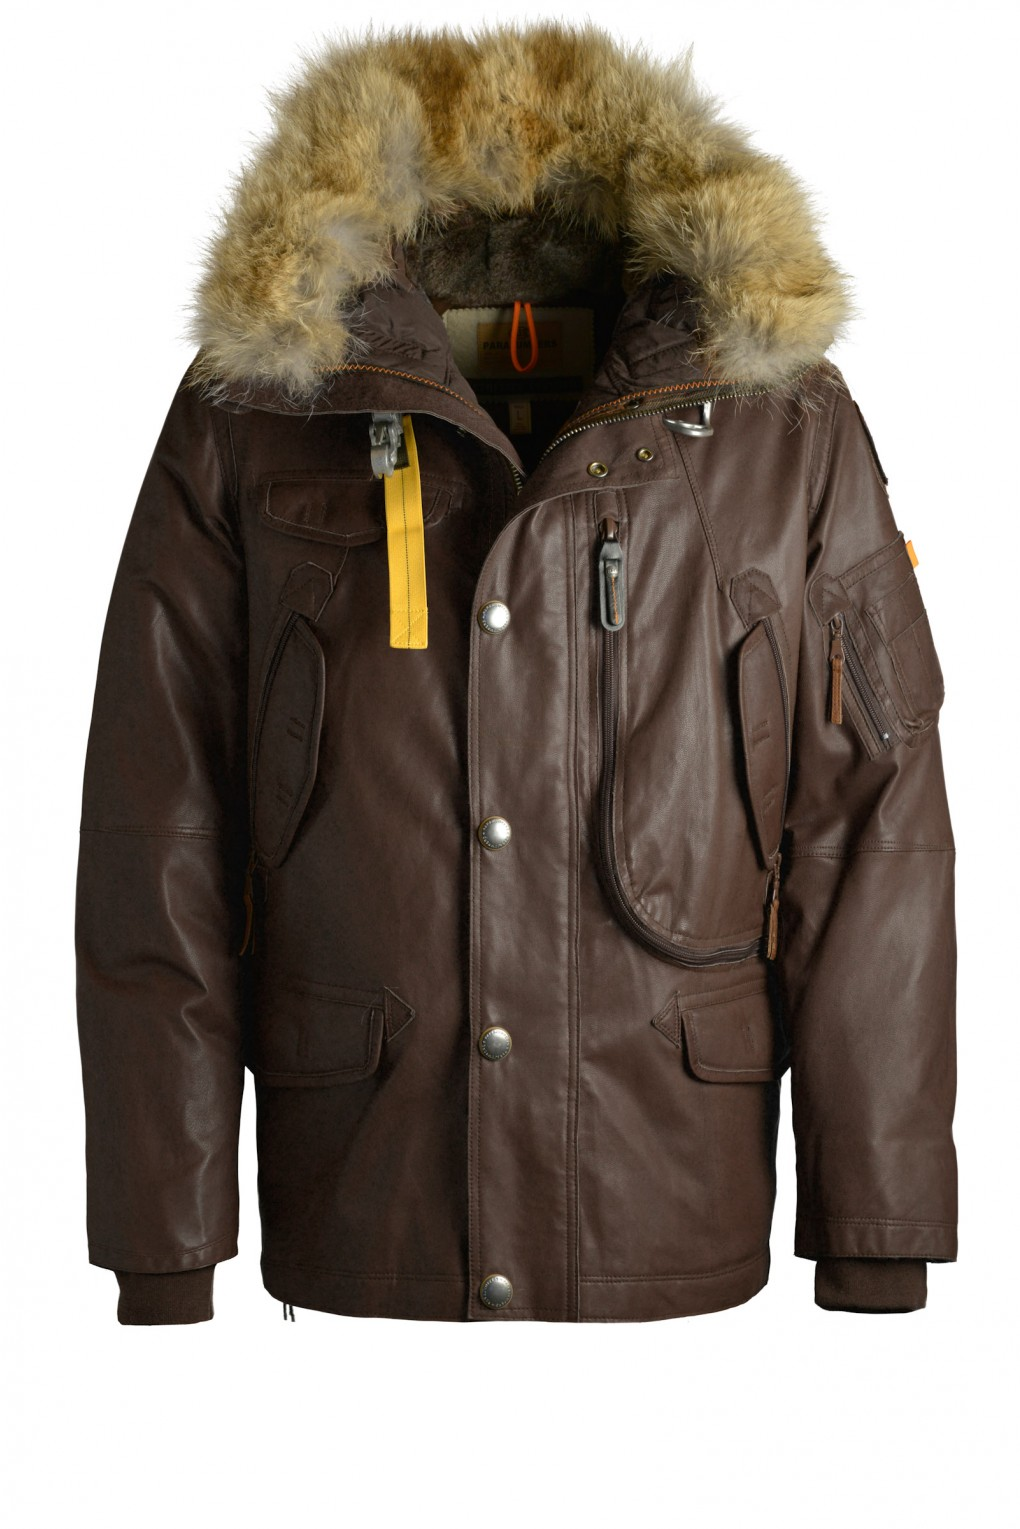 parajumpers RIGHT HAND LEATHER man outerwear Dark Brown